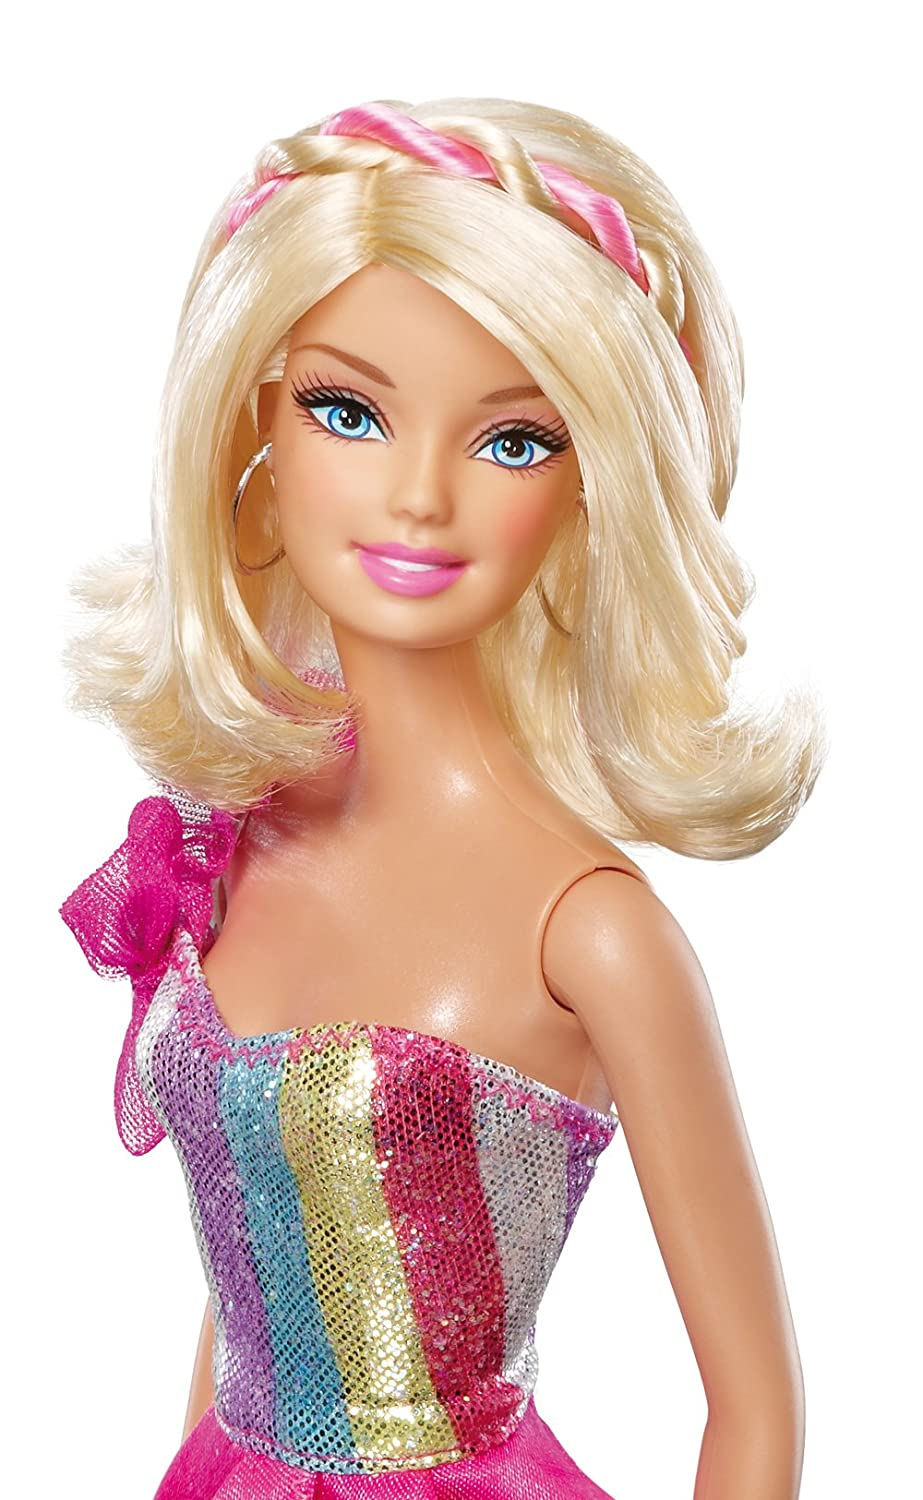 Barbie Hairstyles barbie hairstyle inkcloth Barbie Hair Tastic Cut Style Doll Blonde Amazoncouk Toys Games